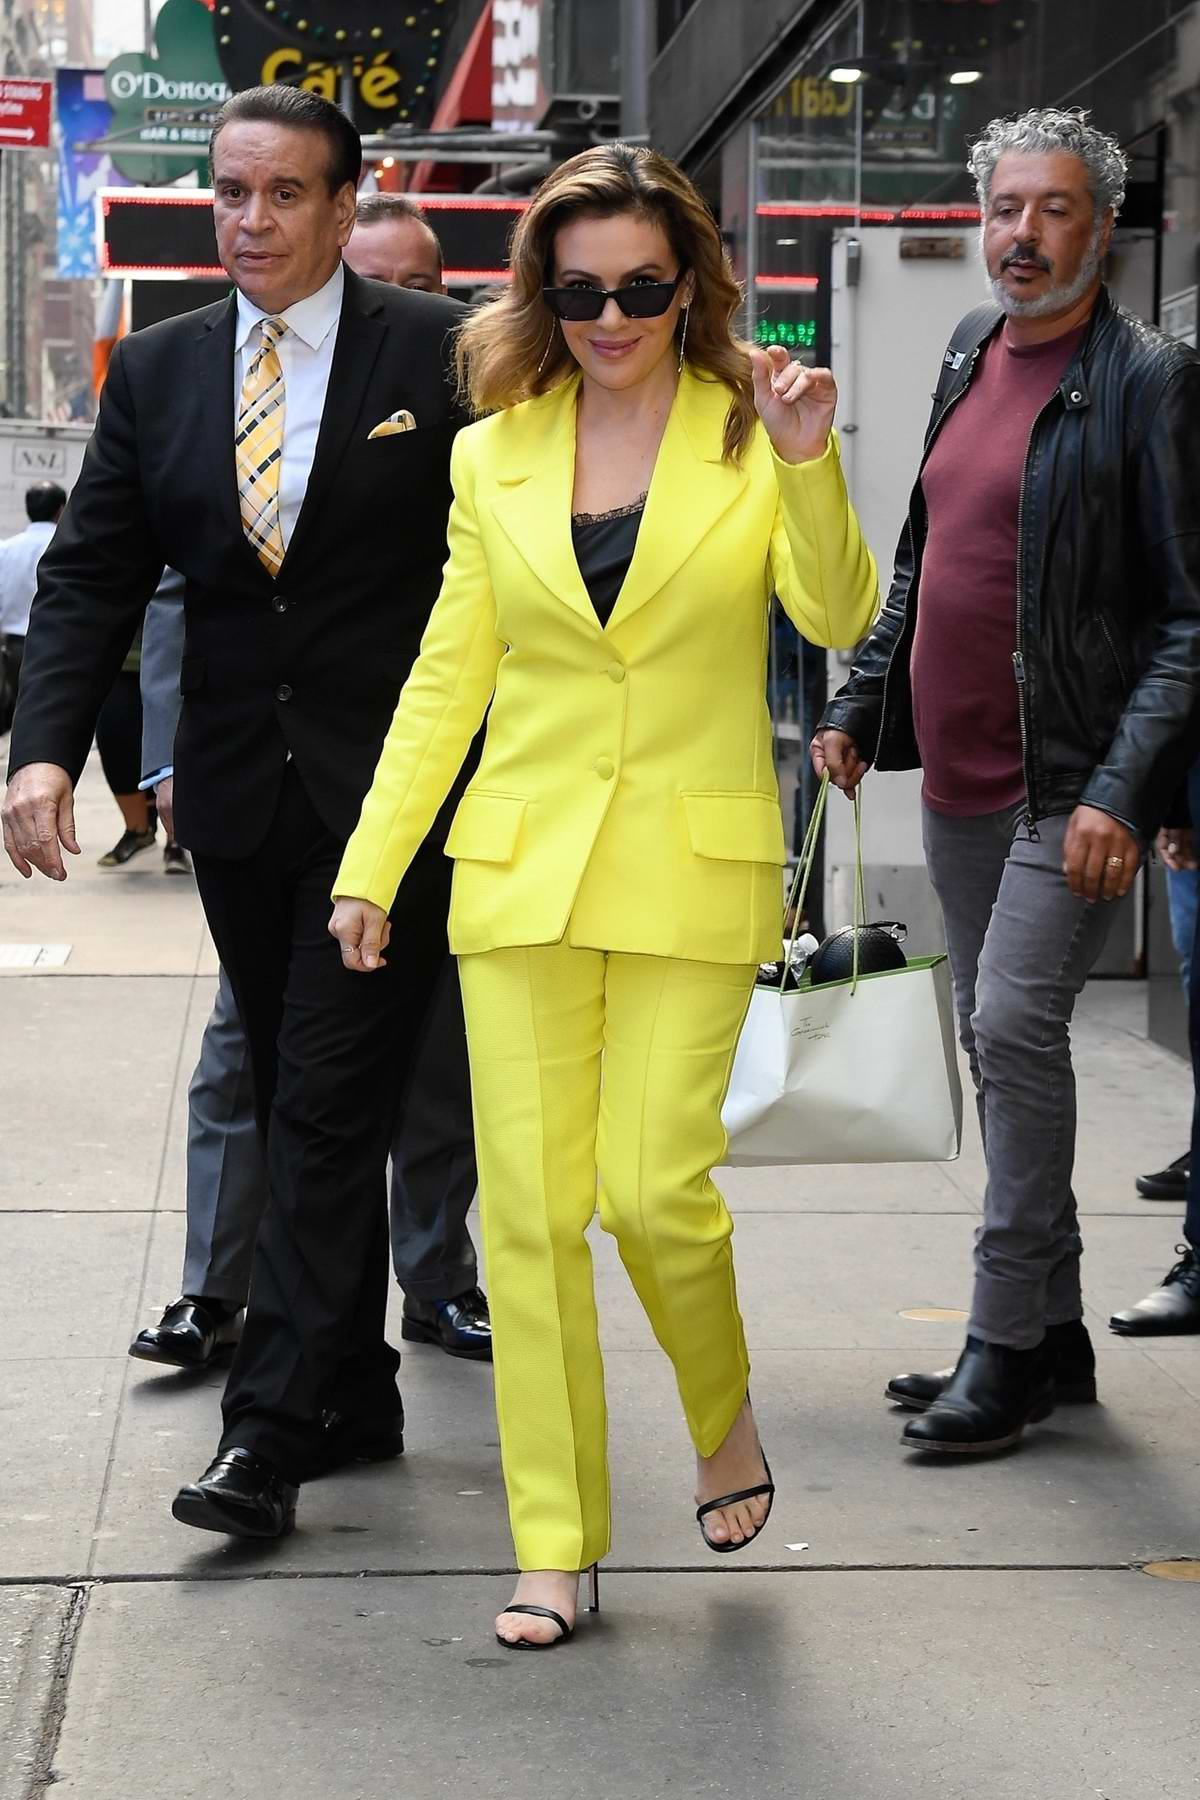 Alyssa Milano looks vibrant in a lemon yellow suit while visiting 'Good Morning America' in New York City